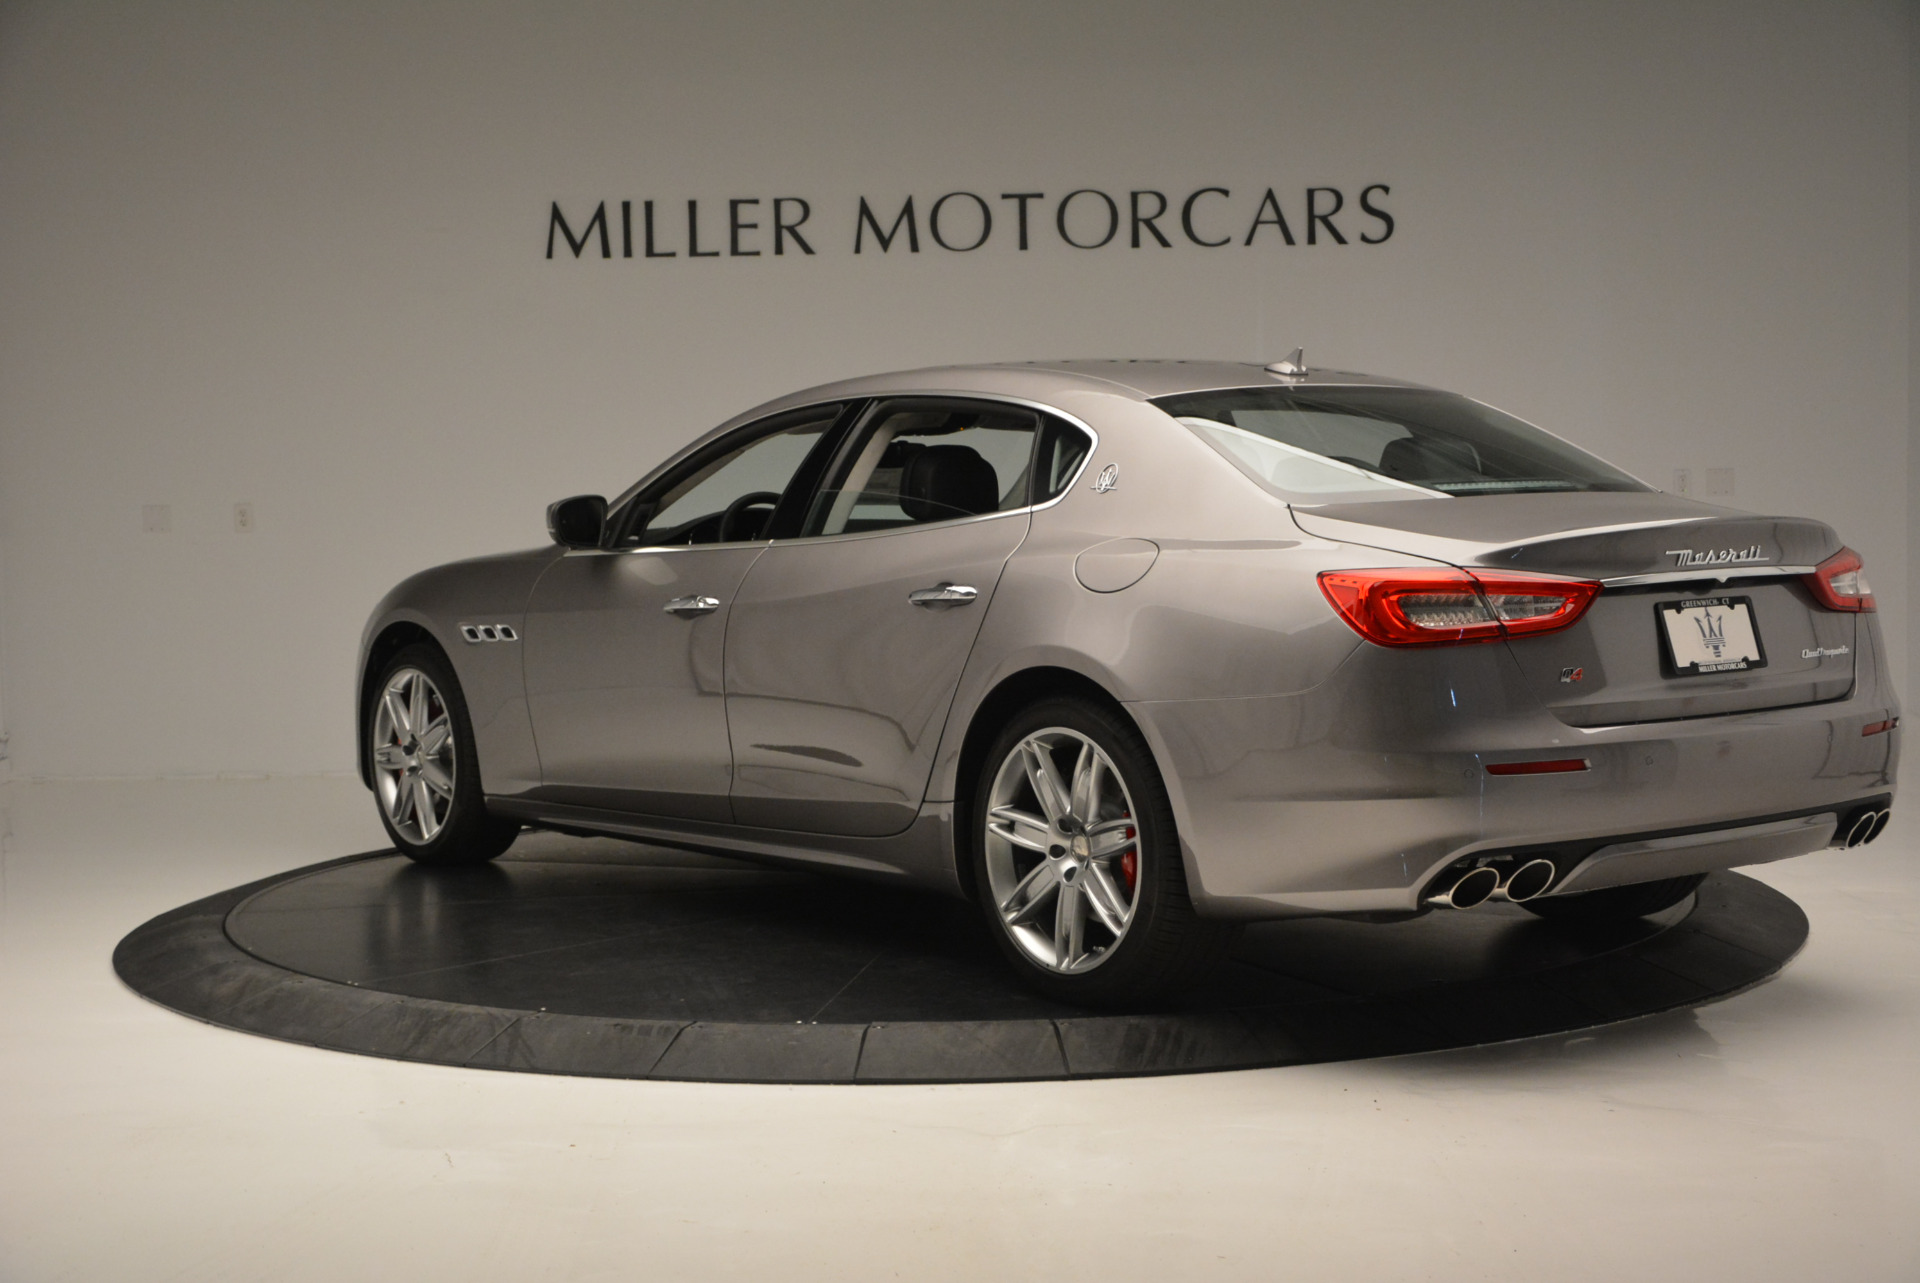 New 2017 Maserati Quattroporte S Q4 GranLusso For Sale In Westport, CT 611_p5